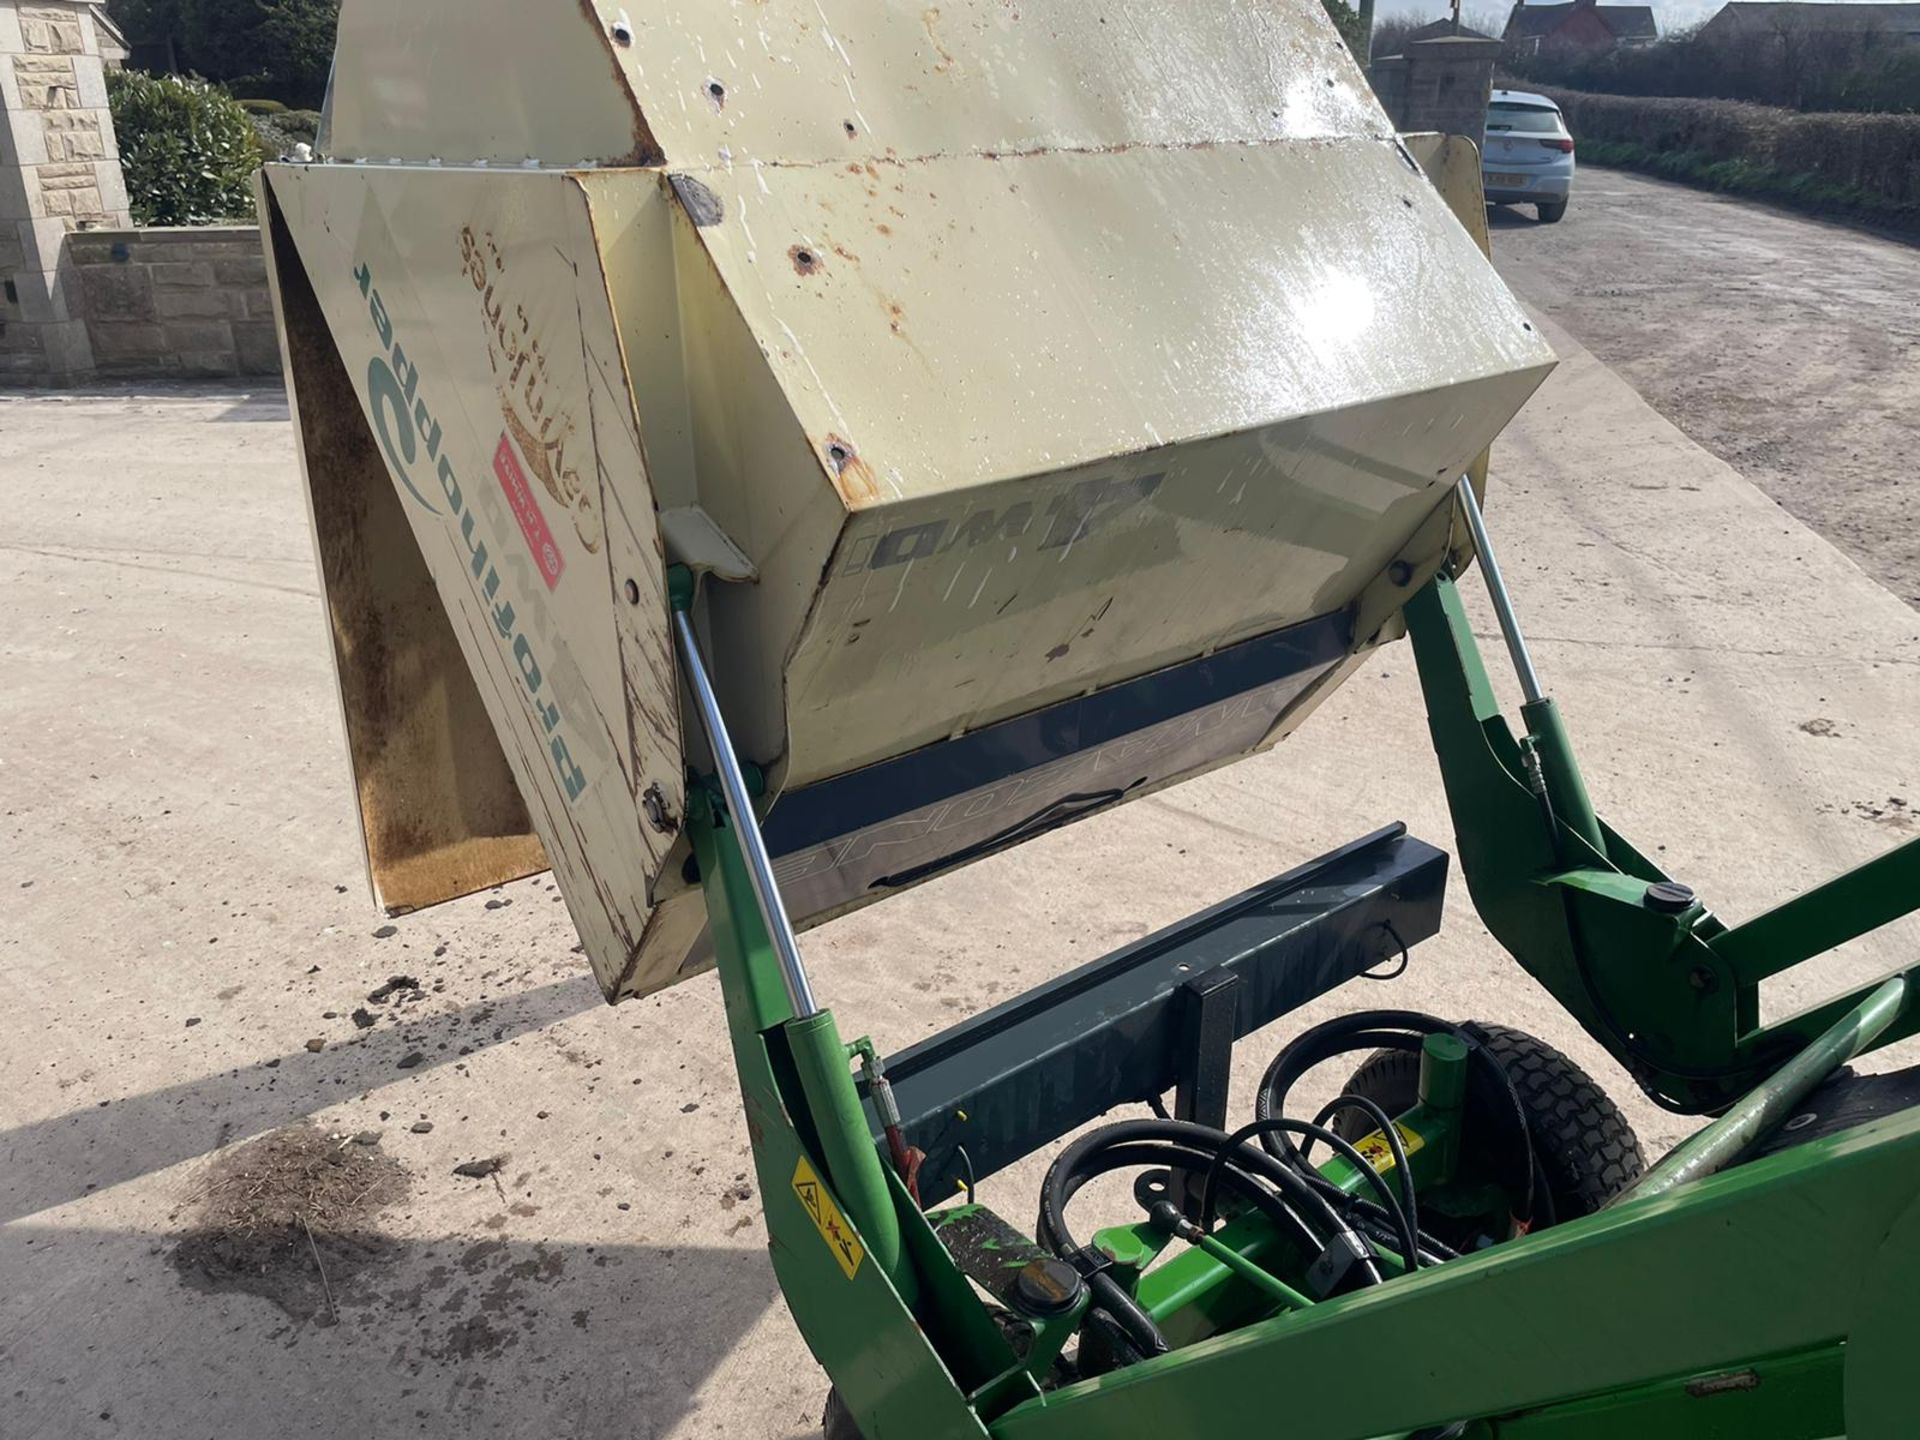 2012 AMAZONE PROFIHOPPER RIDE ON MOWER, RUNS, DRIVES AND CUTS, IN GOOD CONDITION *PLUS VAT* - Image 9 of 14